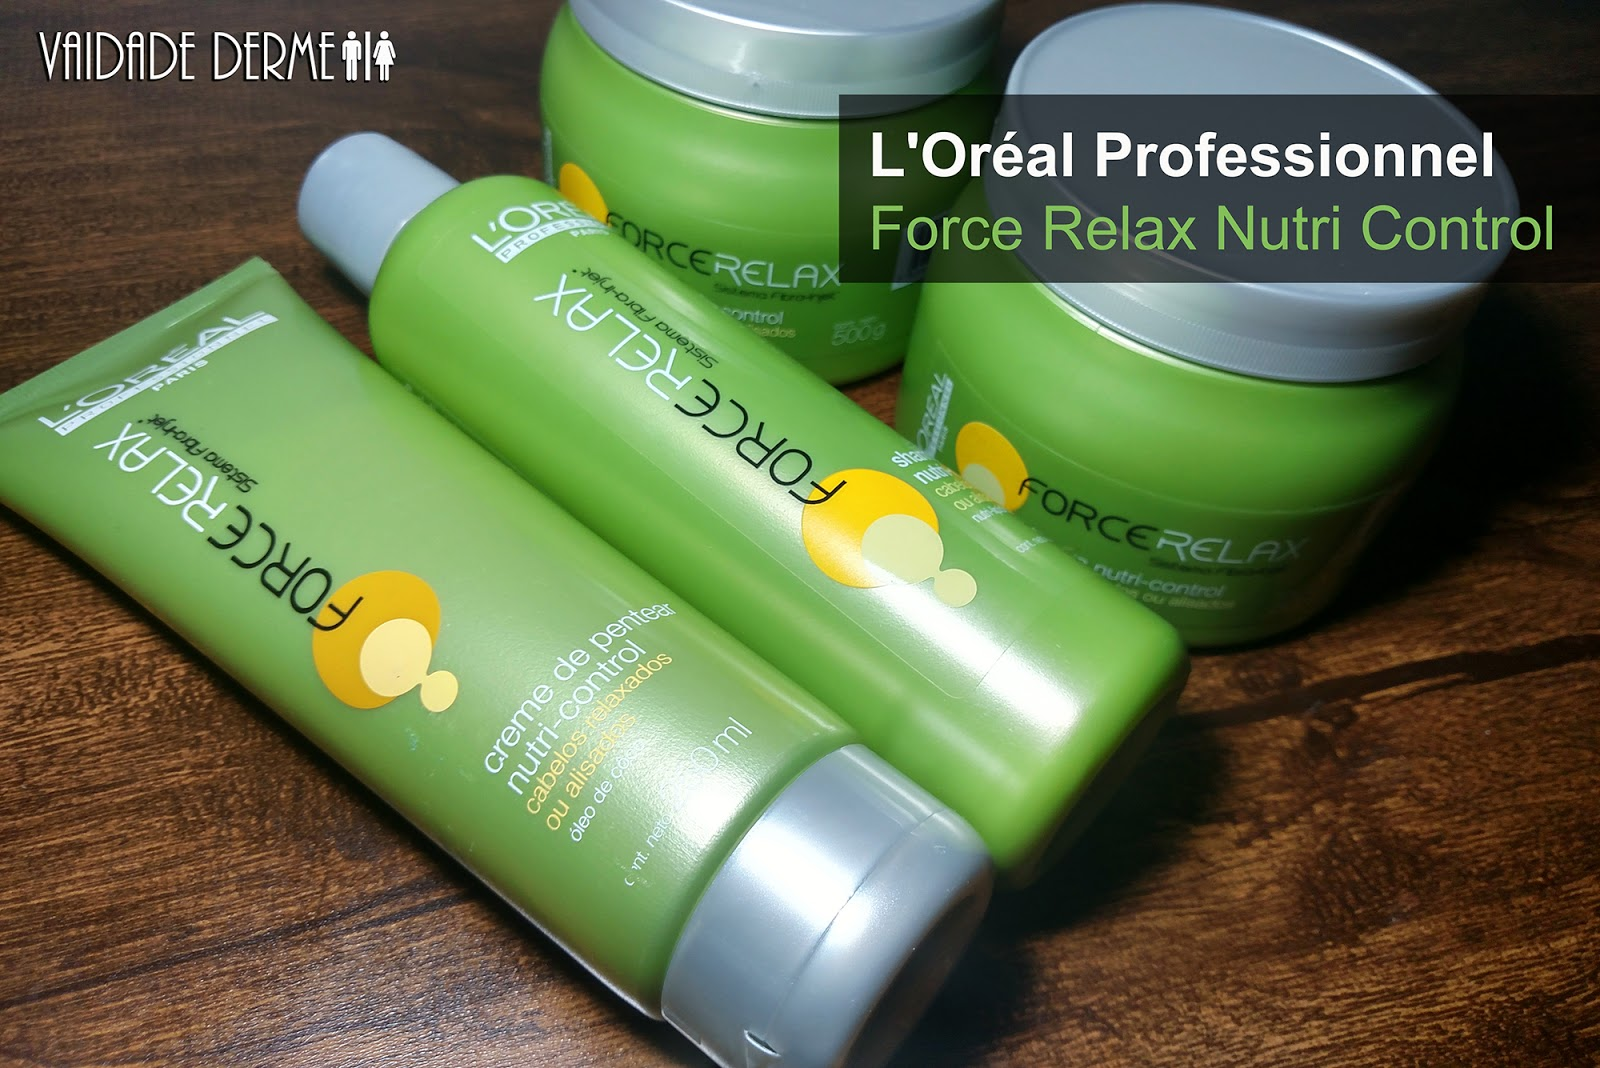 Loreal Profissional Force Relax